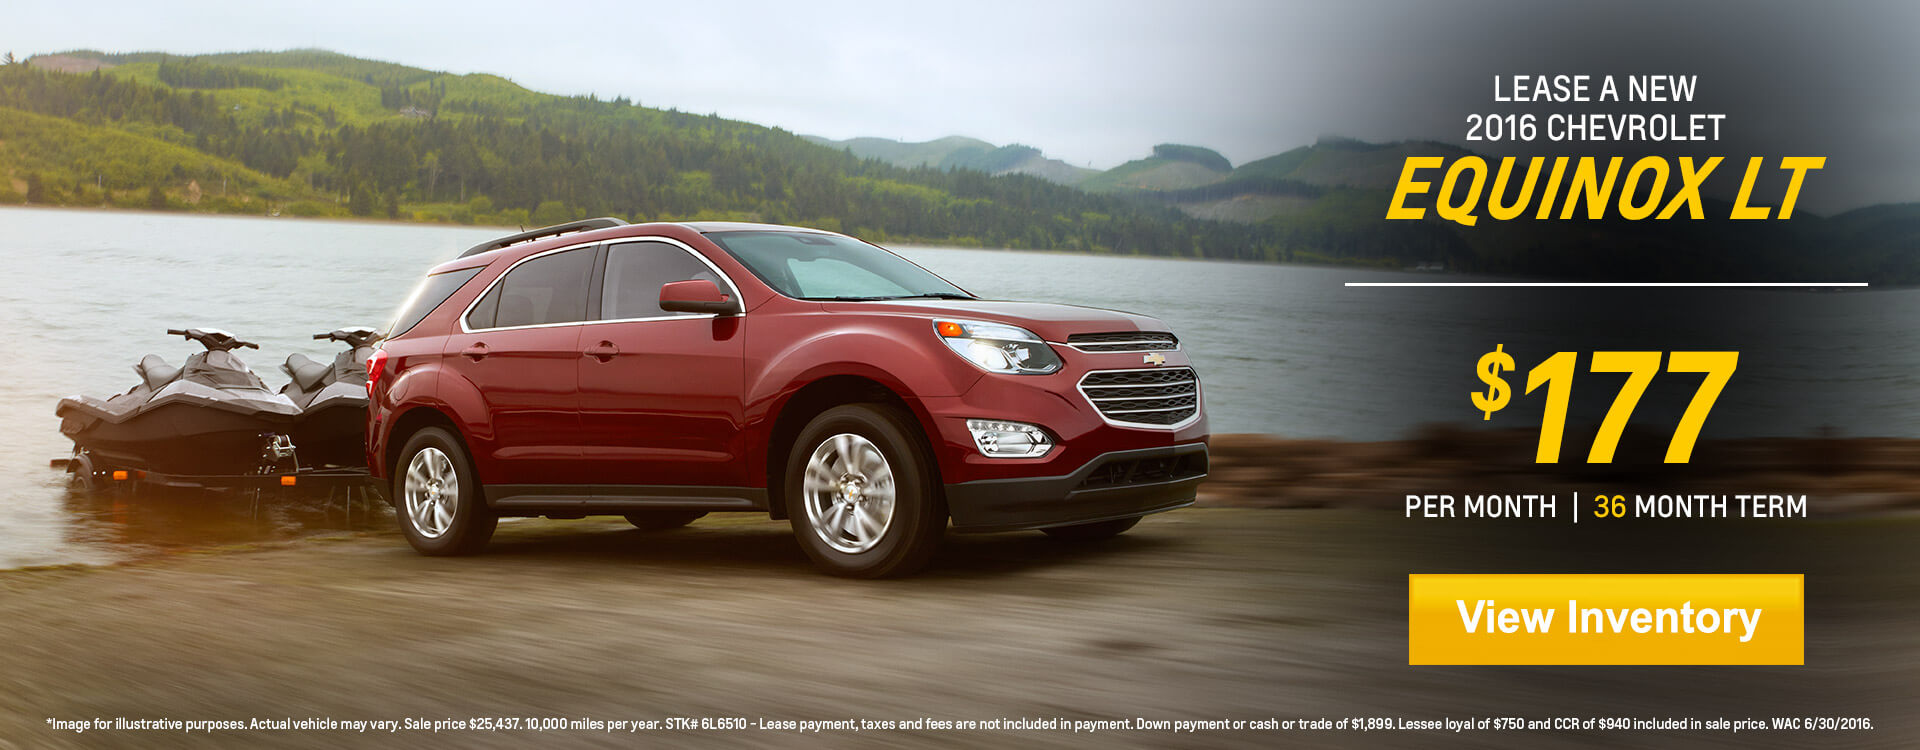 the specials from landers mcclarty chevrolet. Cars Review. Best American Auto & Cars Review